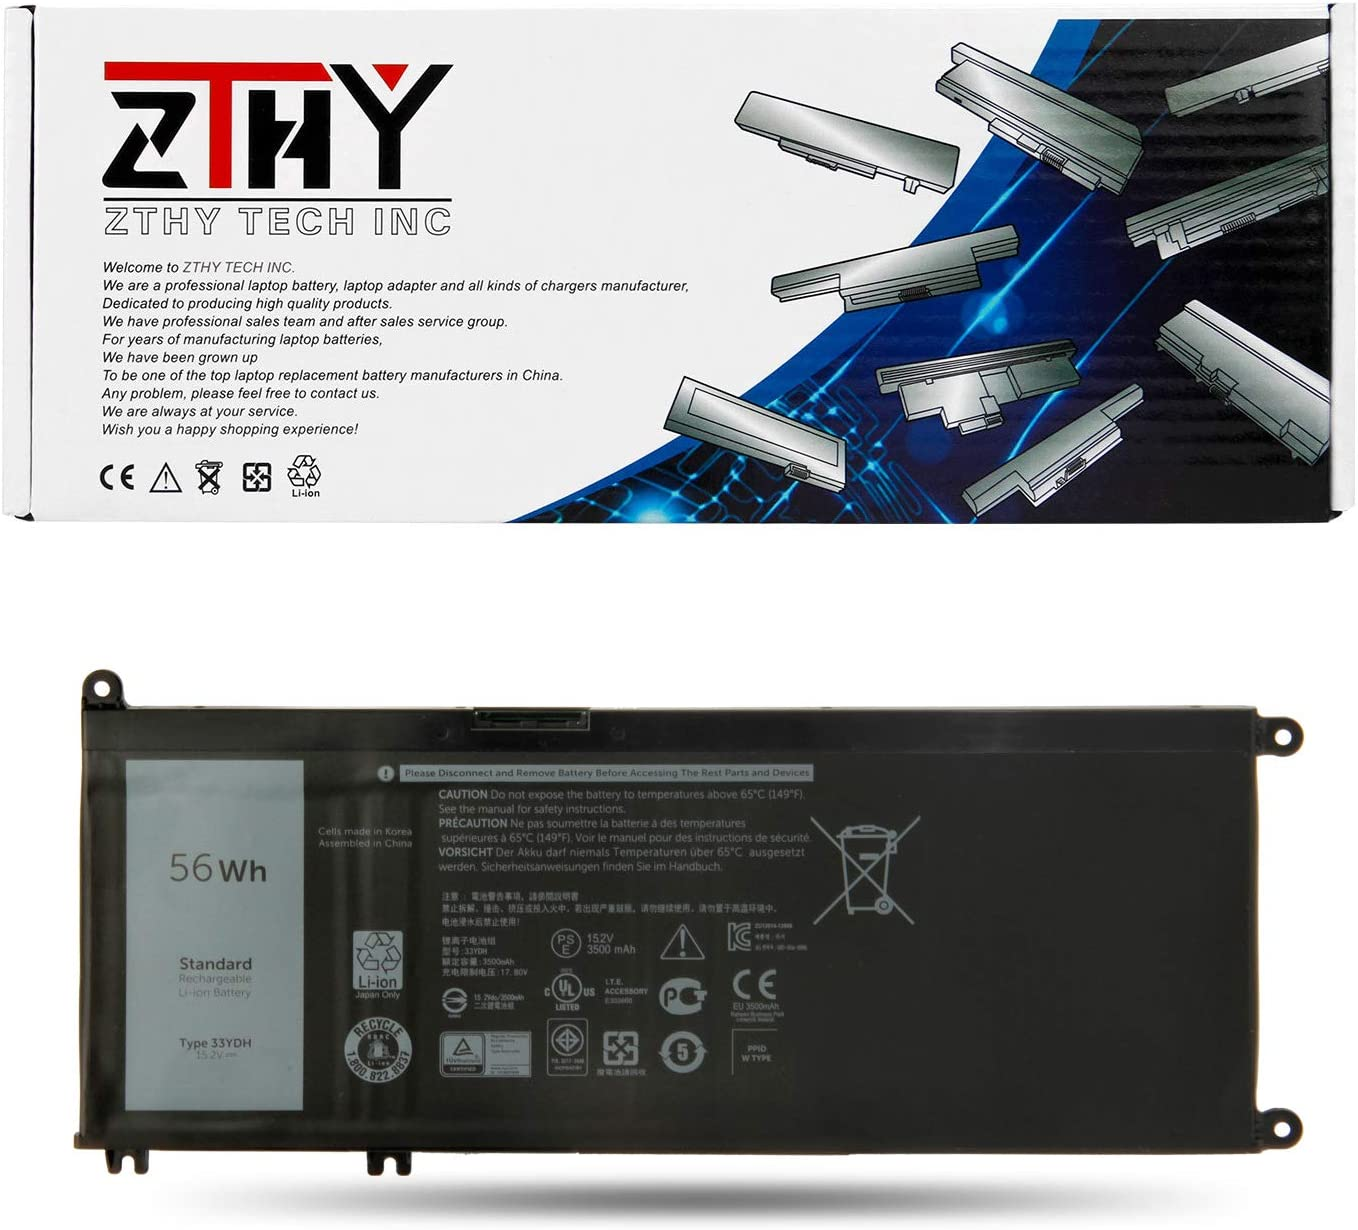 ZTHY 33YDH Laptop Battery for Dell Inspiron 15 7577 17 7000 7773 7778 7786 7779 2in1 G3 15 3579 G3 17 3779 G5 15 5587 G7 15 7588 Latitude 13 3380 14 3490 15 3590 3580 PVHT1 56Wh 4-Cell 15.2V 3500mAh